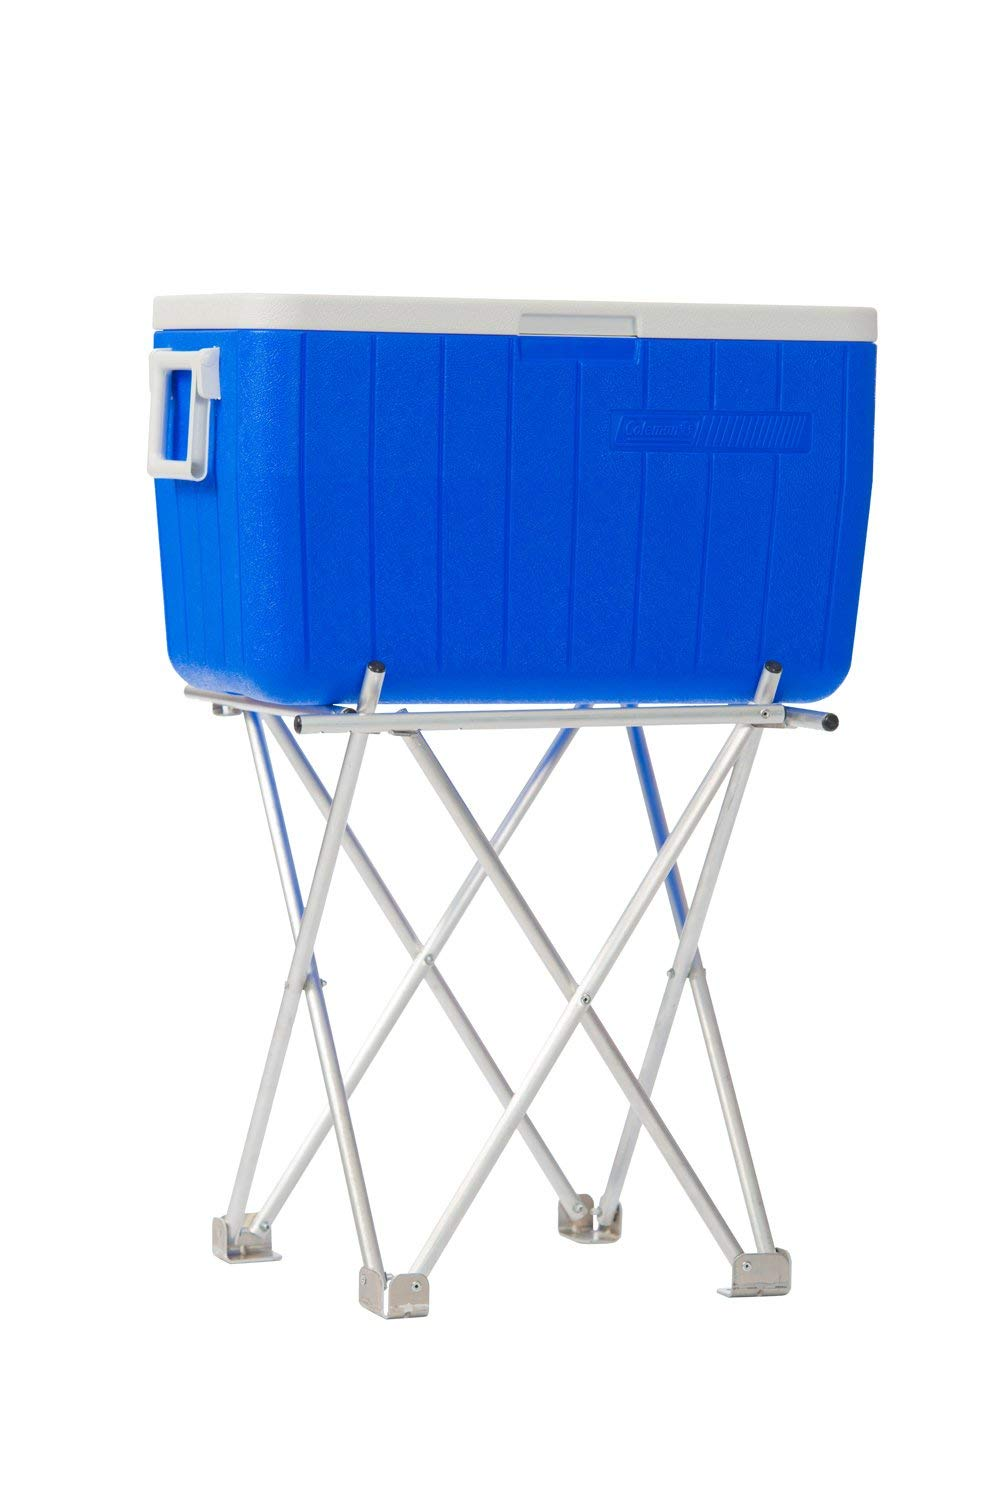 Ben-No-Mo 300 lb. Capacity, Lightweight, Collapsible, and Adjustable Stand. by Ben-No-Mo Adjustable-Collapsible cooler stand